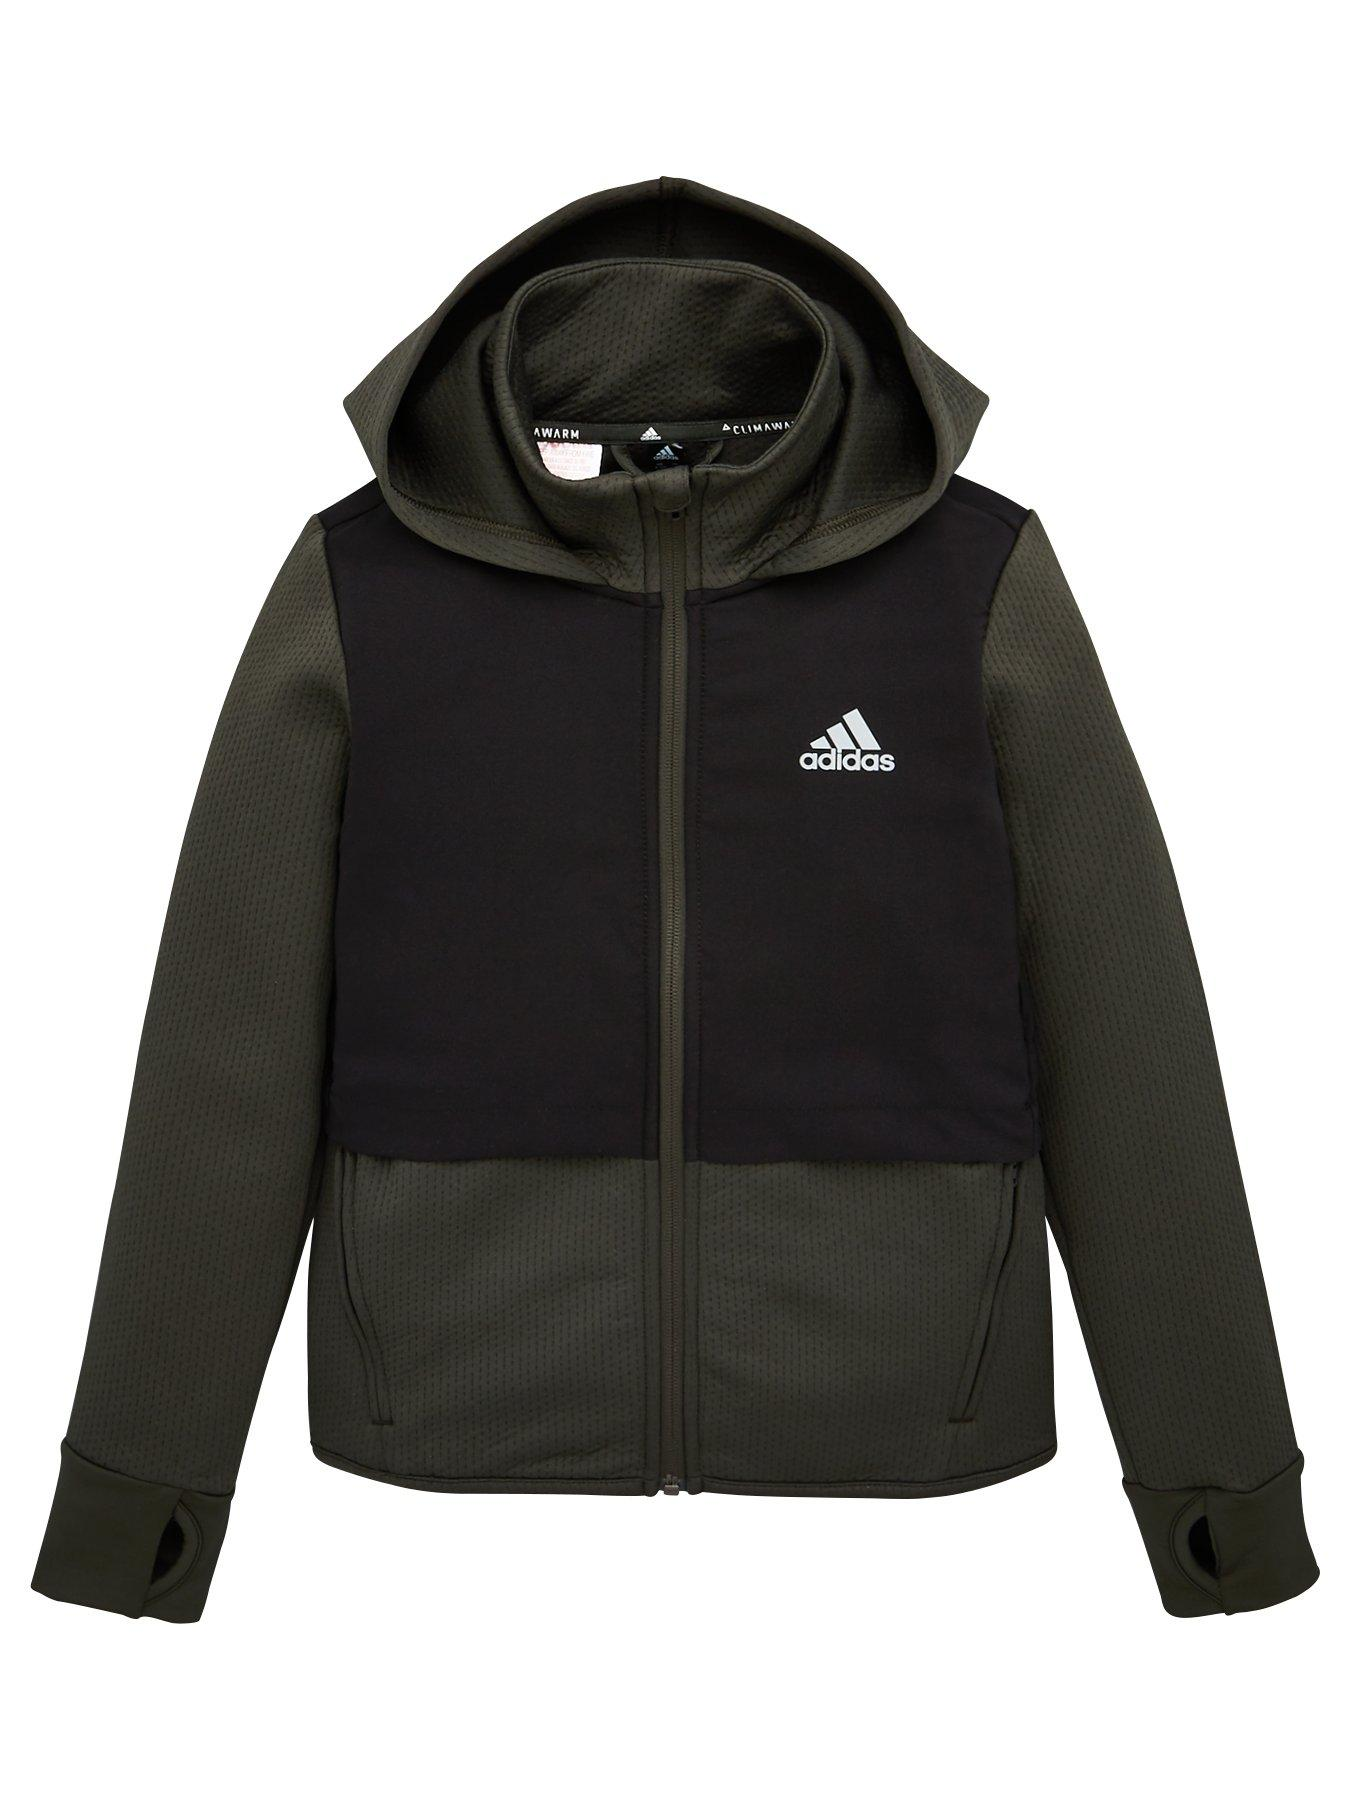 Adidas Originals Mens GSG9 Full Zip Hoodie Hoody Jacket Free Tracked Post XS /& S